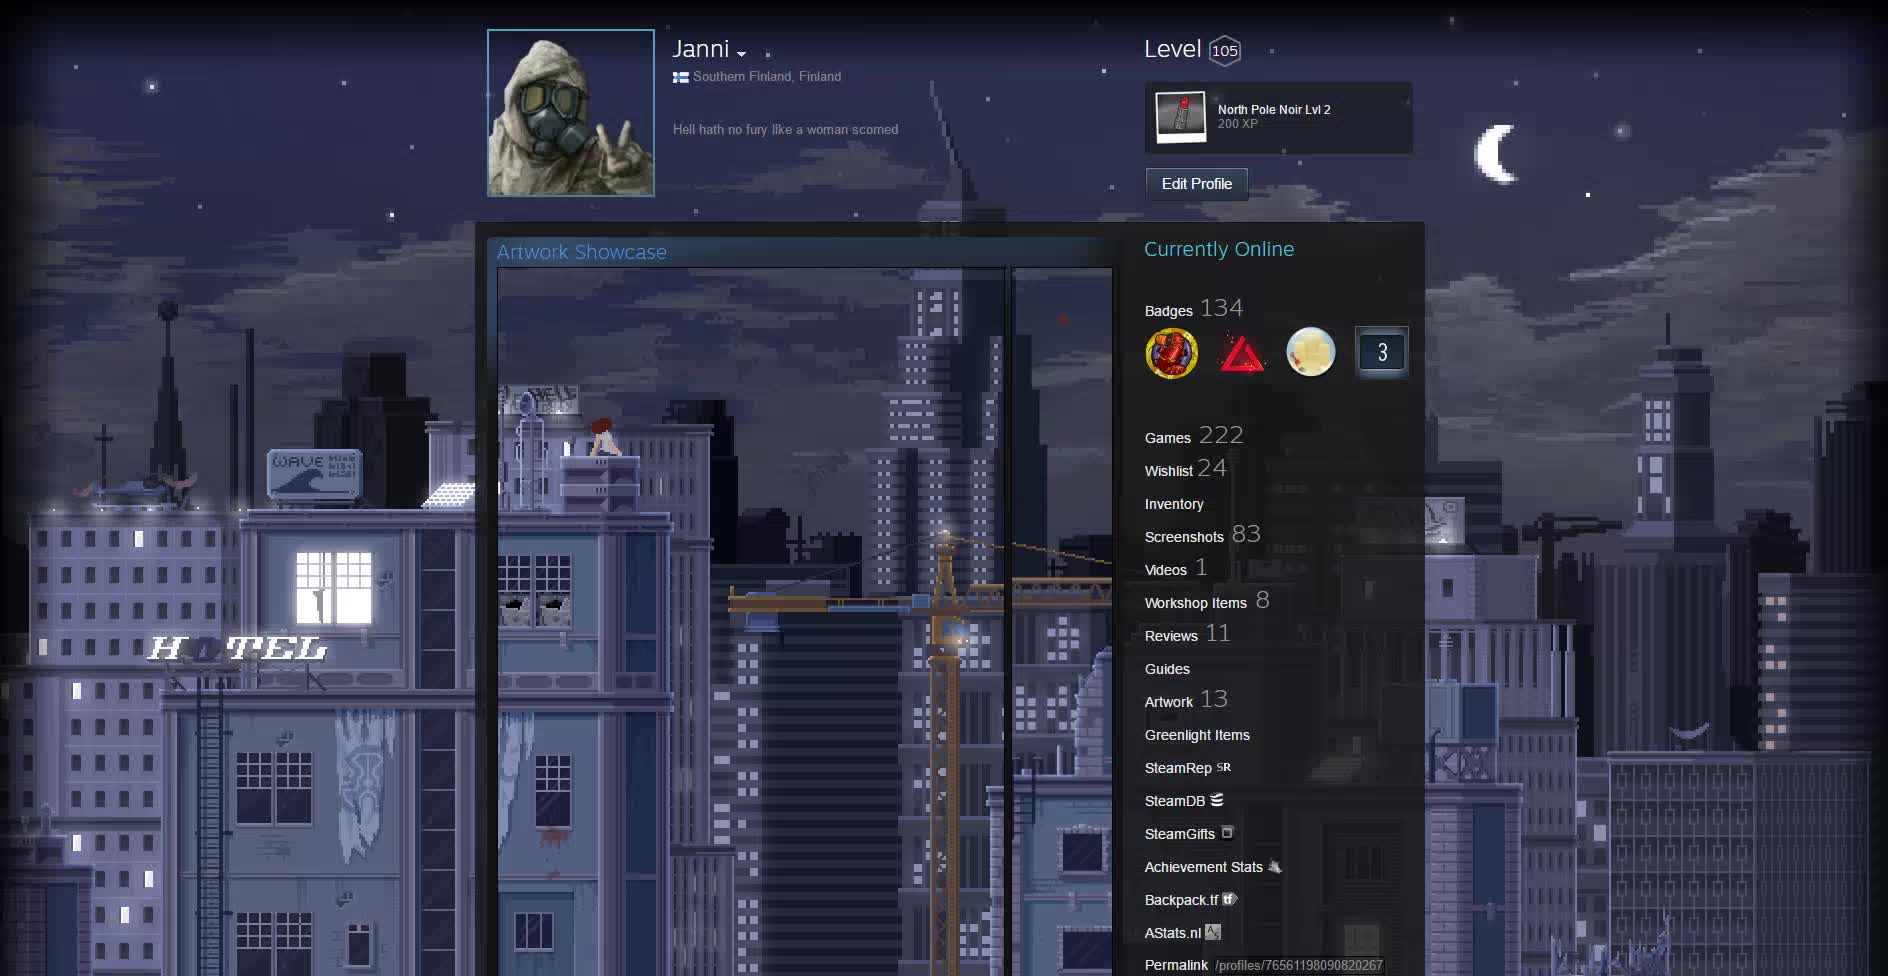 SteamArtworkProfiles, steamartworkprofiles, I thought my profile could need a refreshing new thing or two, so I modified it by a little. Big City Life, now with more flashing lights (reddit) GIFs